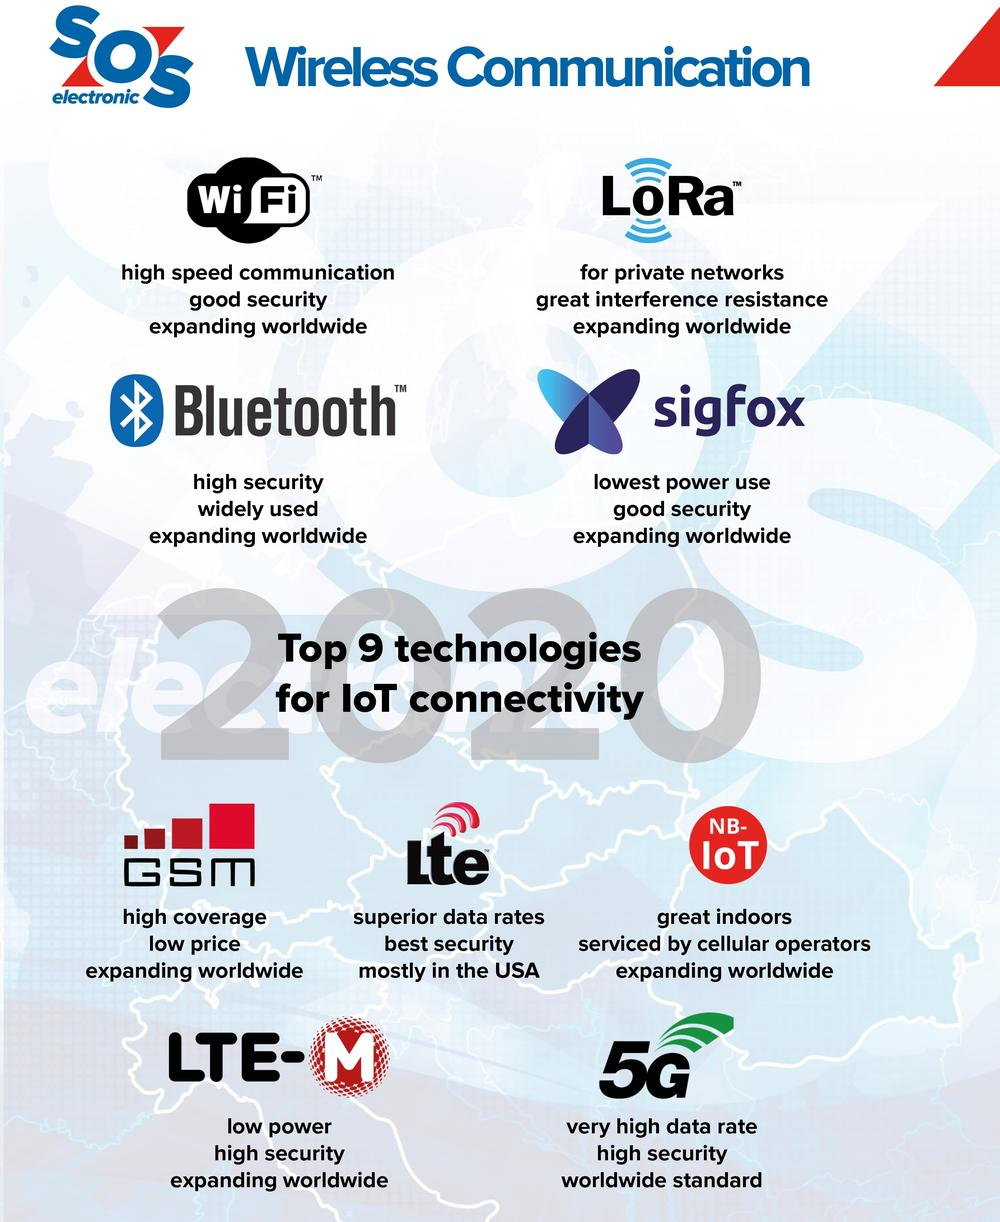 TOP 9 technologies for wireless communication